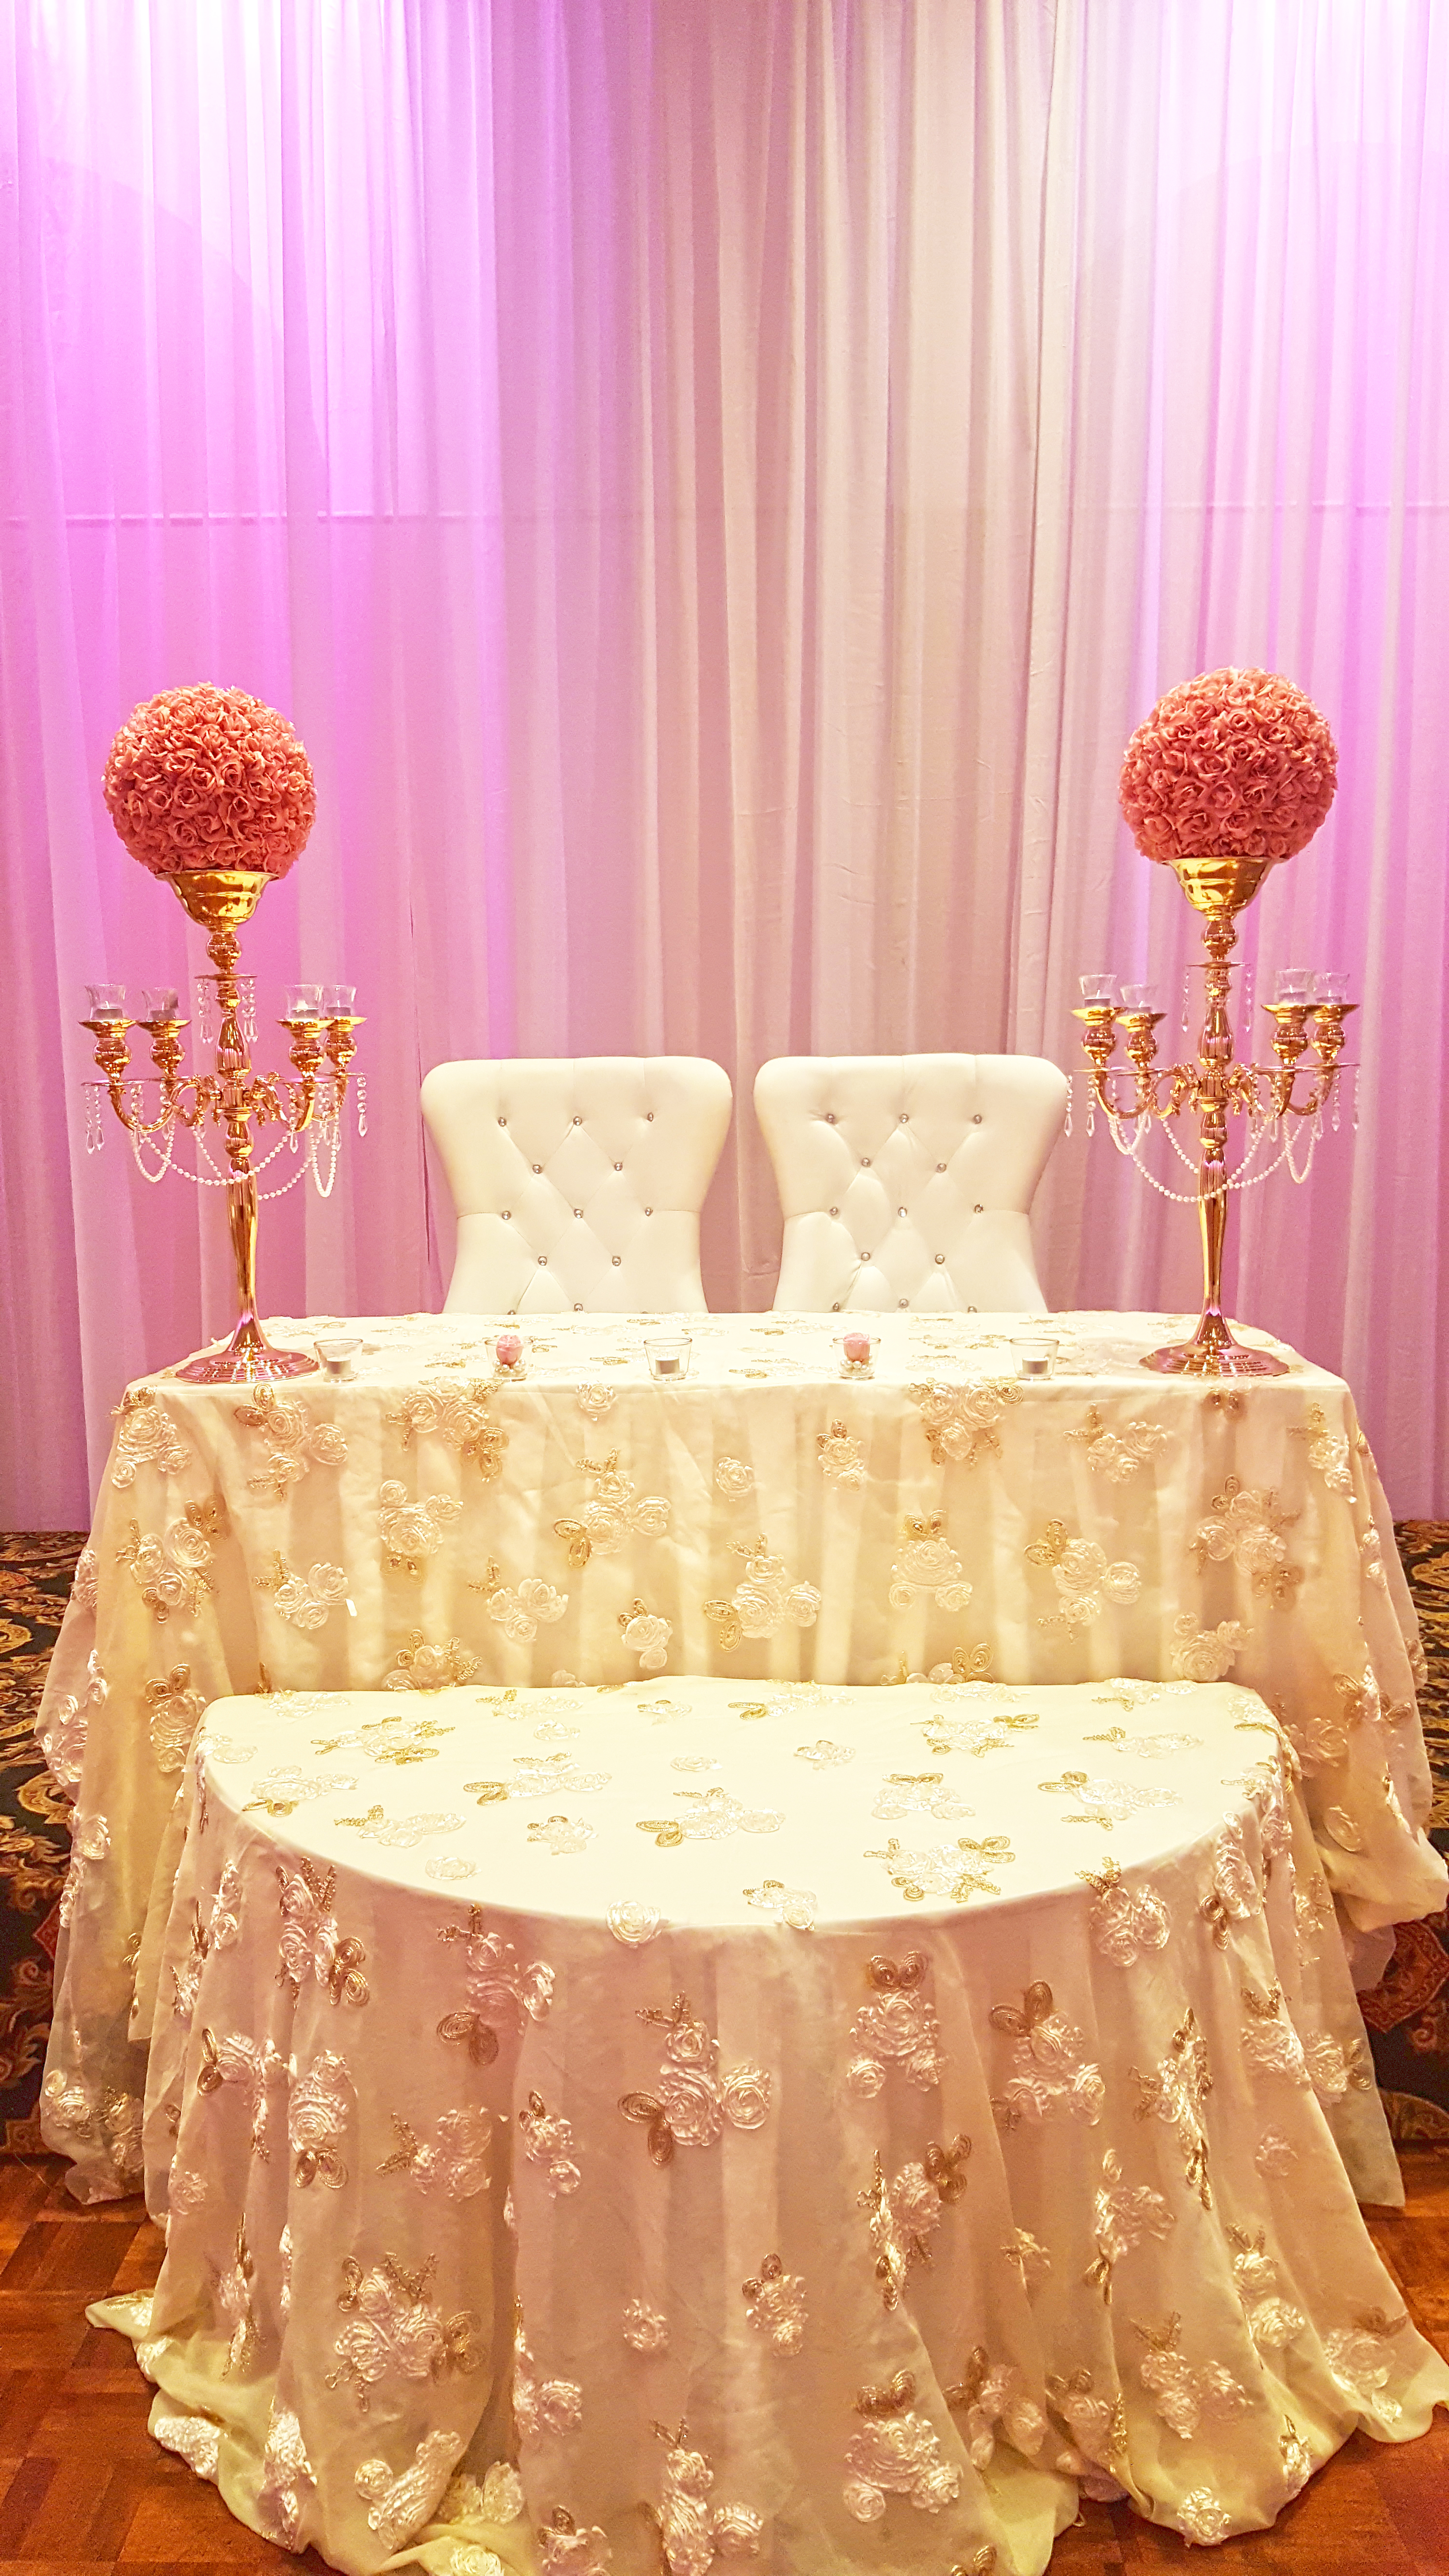 Bride and Groom chairs in White